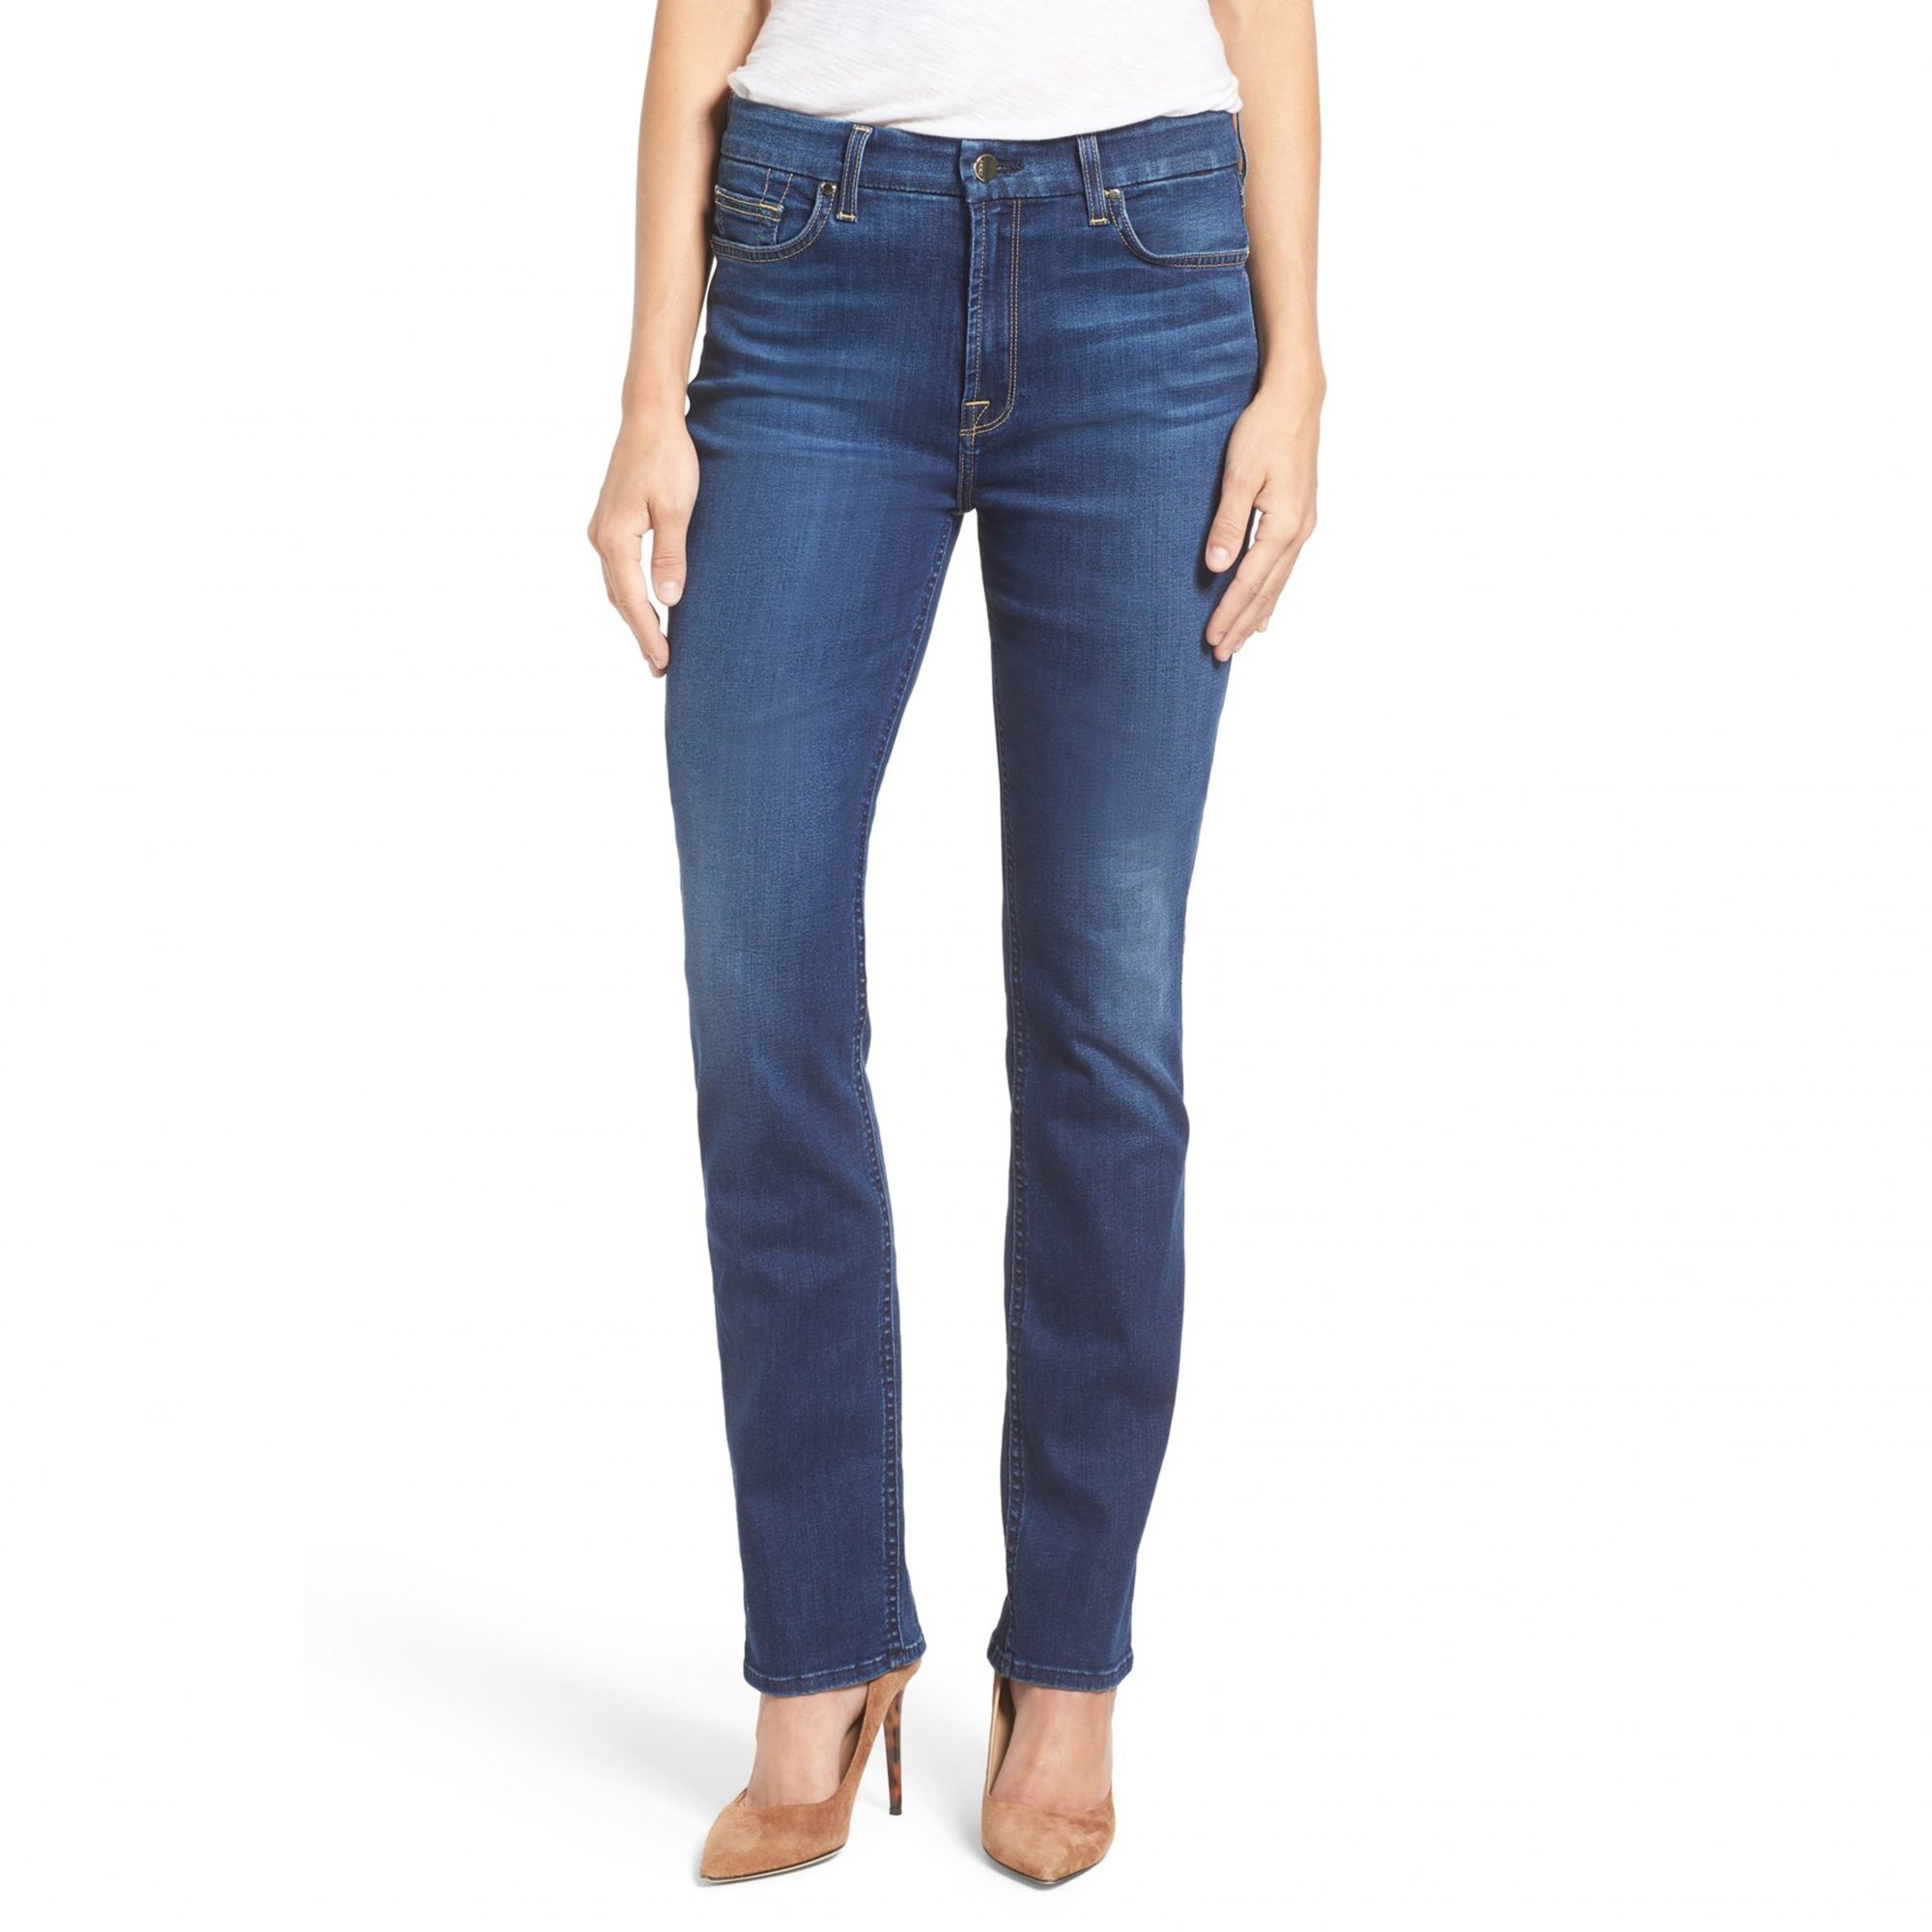 JEN7 by 7 For All Mankind Stretch Slim Straight Jeans